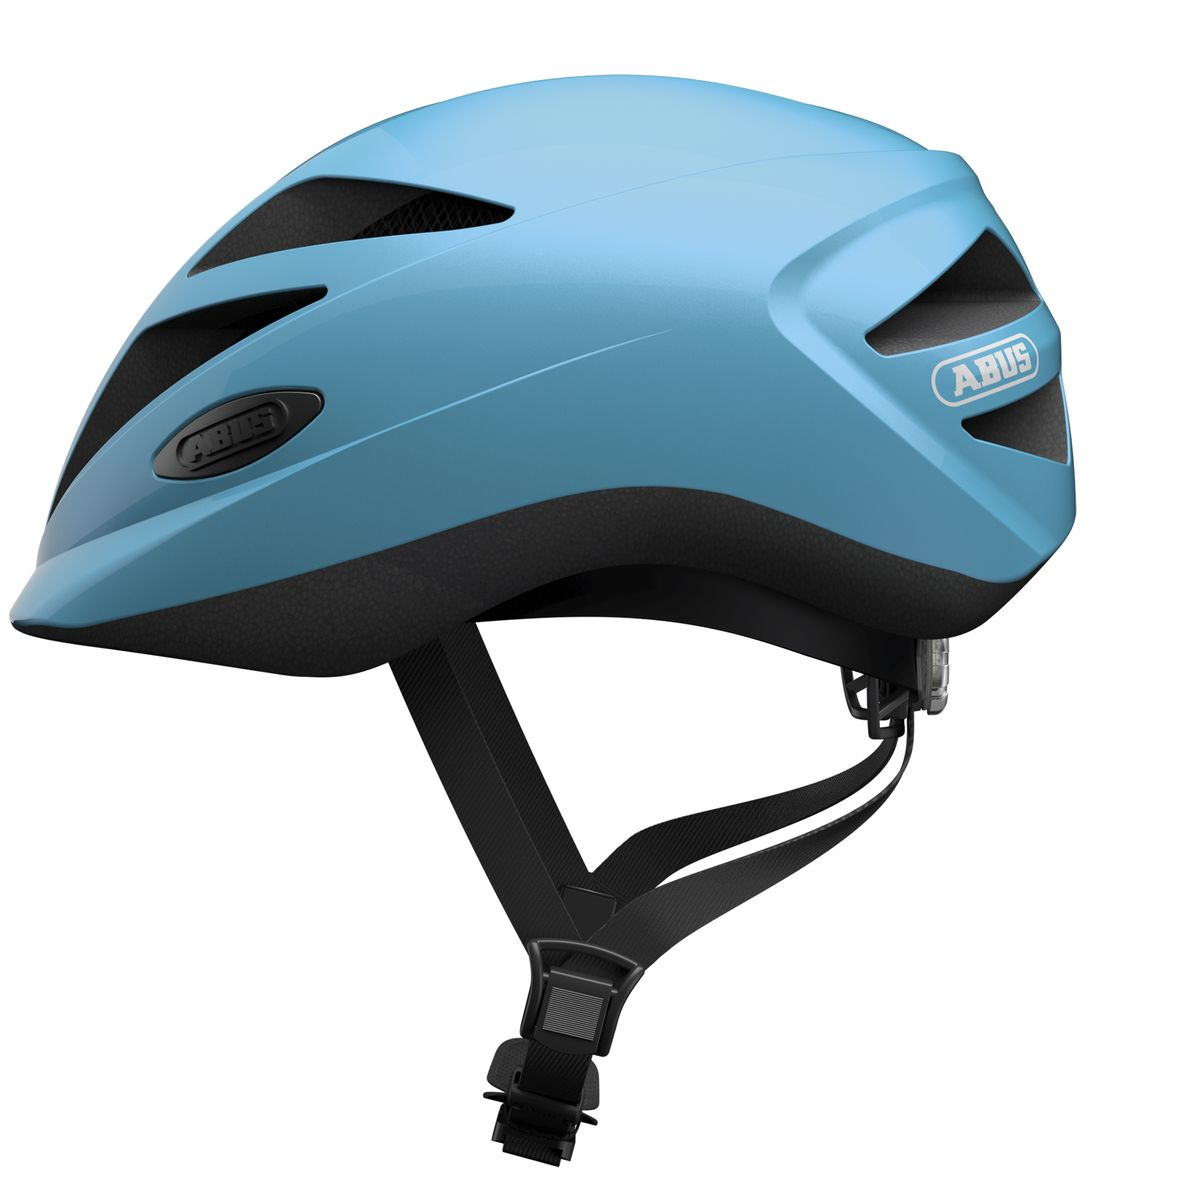 Hubble 1.1 kids' helmet